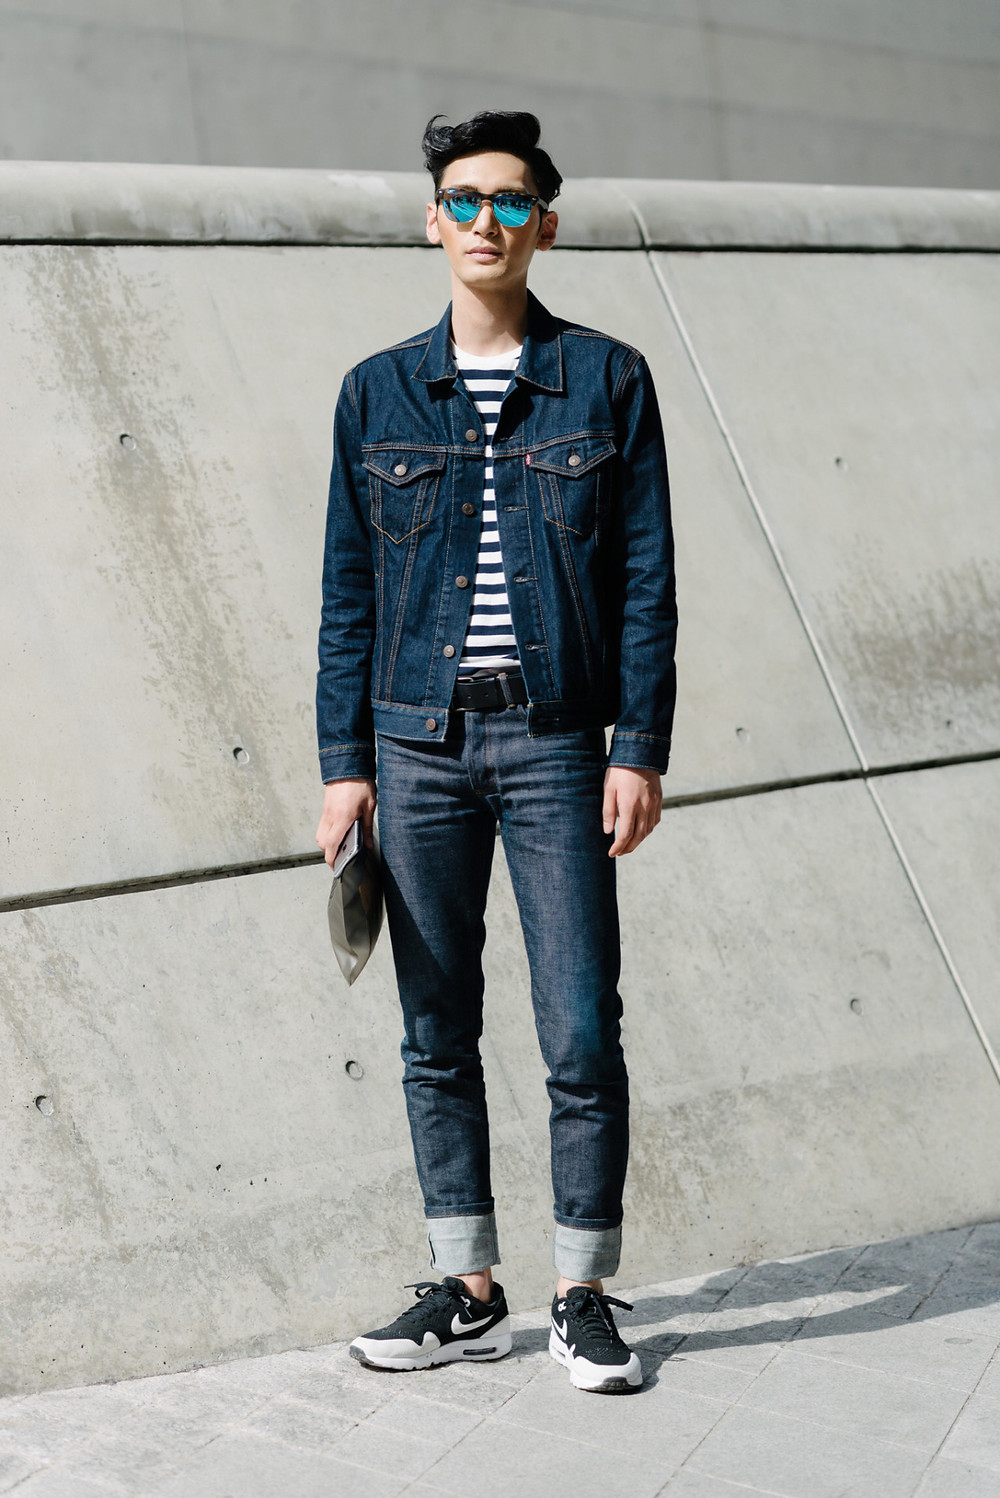 http://koreanmodel.tumblr.com/post/114186328752/streetstyle-kim-yong-ha-at-fall-2015-seoul